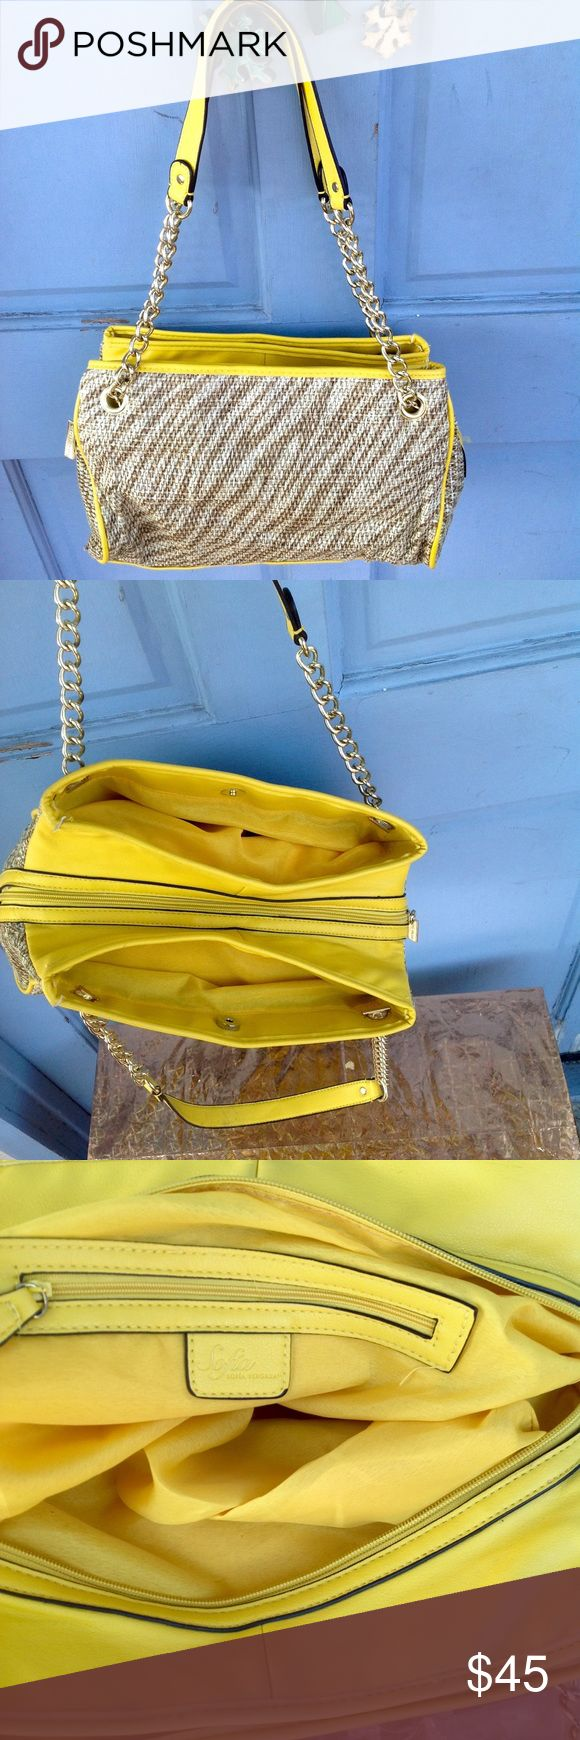 🌼GREAT BRIGHT YELLOW SOFIA VERGARA PURSE🌼 🌼GREAT BRIGHT YELLOW SOFIA VERGARA PURSE🌼 THIS BAG HAS THREE ZIPPER COMPARTMENTS AND MANY POCKETS FOR ALL OF YOUR STUFF!! IT'S REALLY AN AMAZING BAG! Sofia Vergara Bags Shoulder Bags